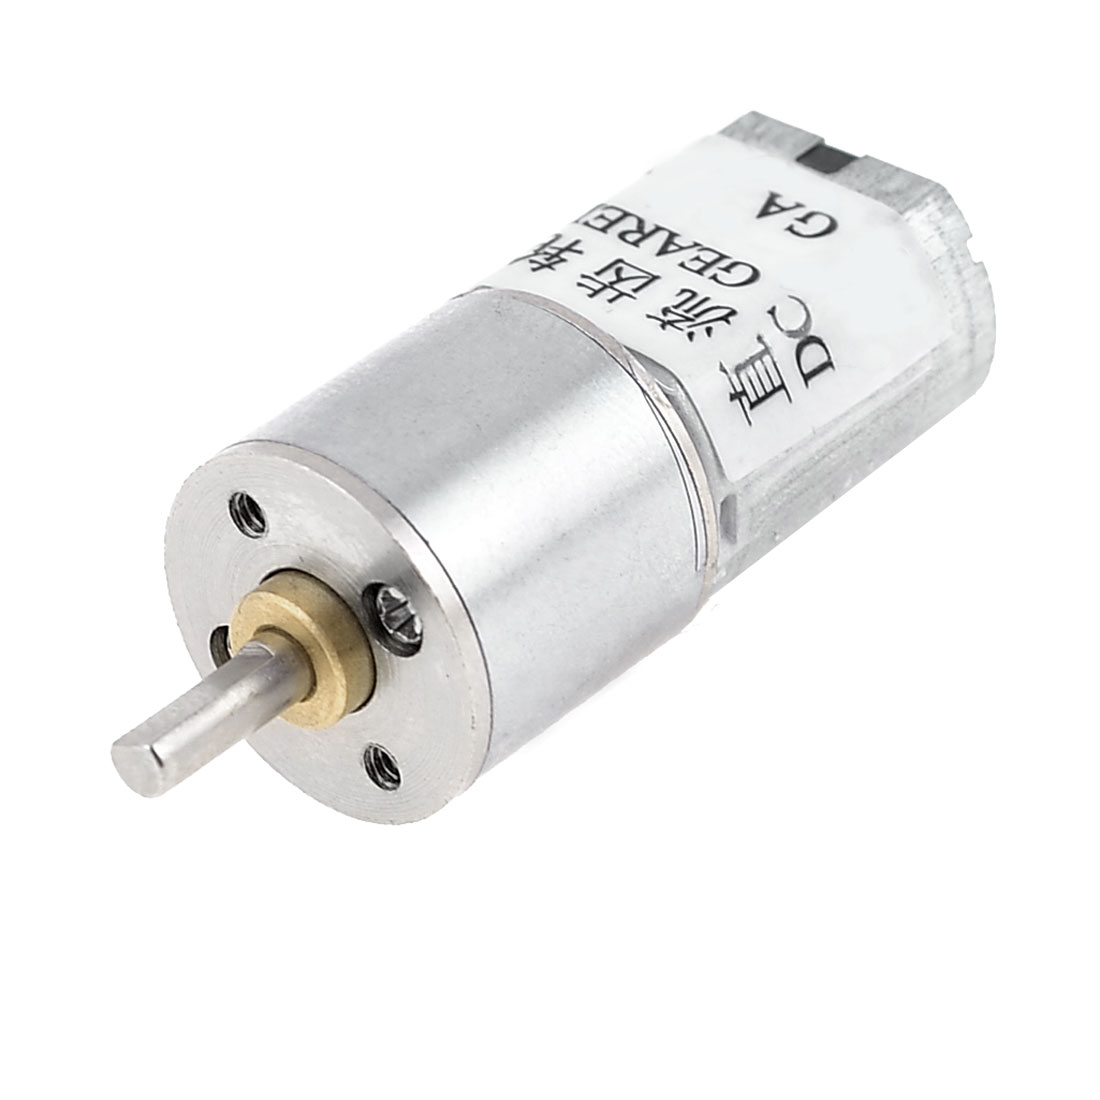 100RPM-Output-Speed-3mm-Shaft-Dia-Synchronous-Reduction-Geared-Motor-6VDC